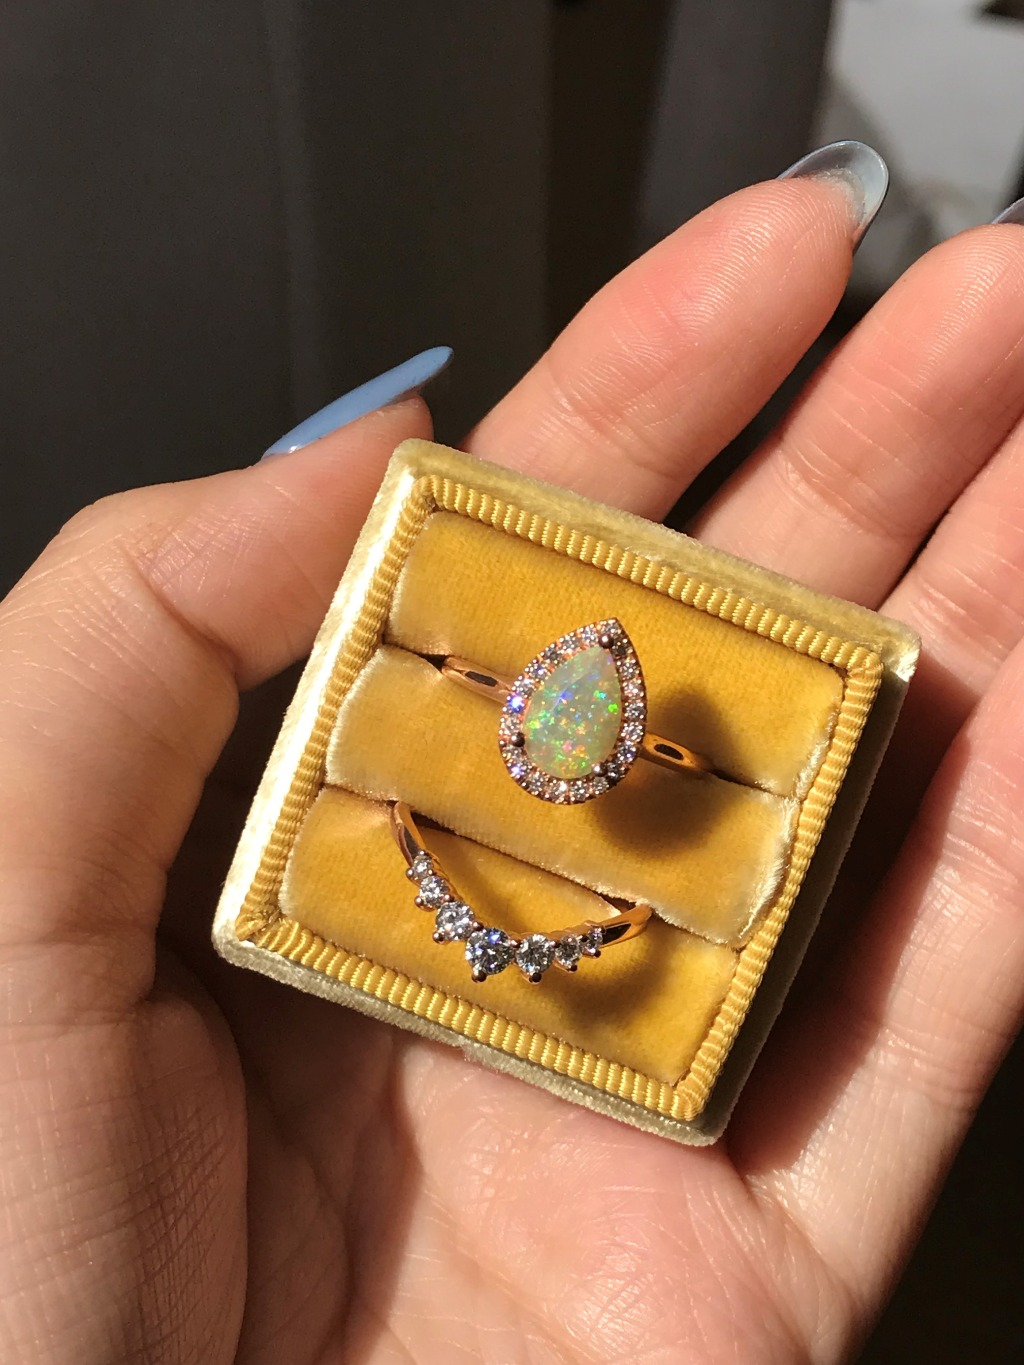 Simply elegant yet stunning! This Opal Bridal Set features a 9x6mm Pear Cut Opal surrounded by sparkling conflict free natural white